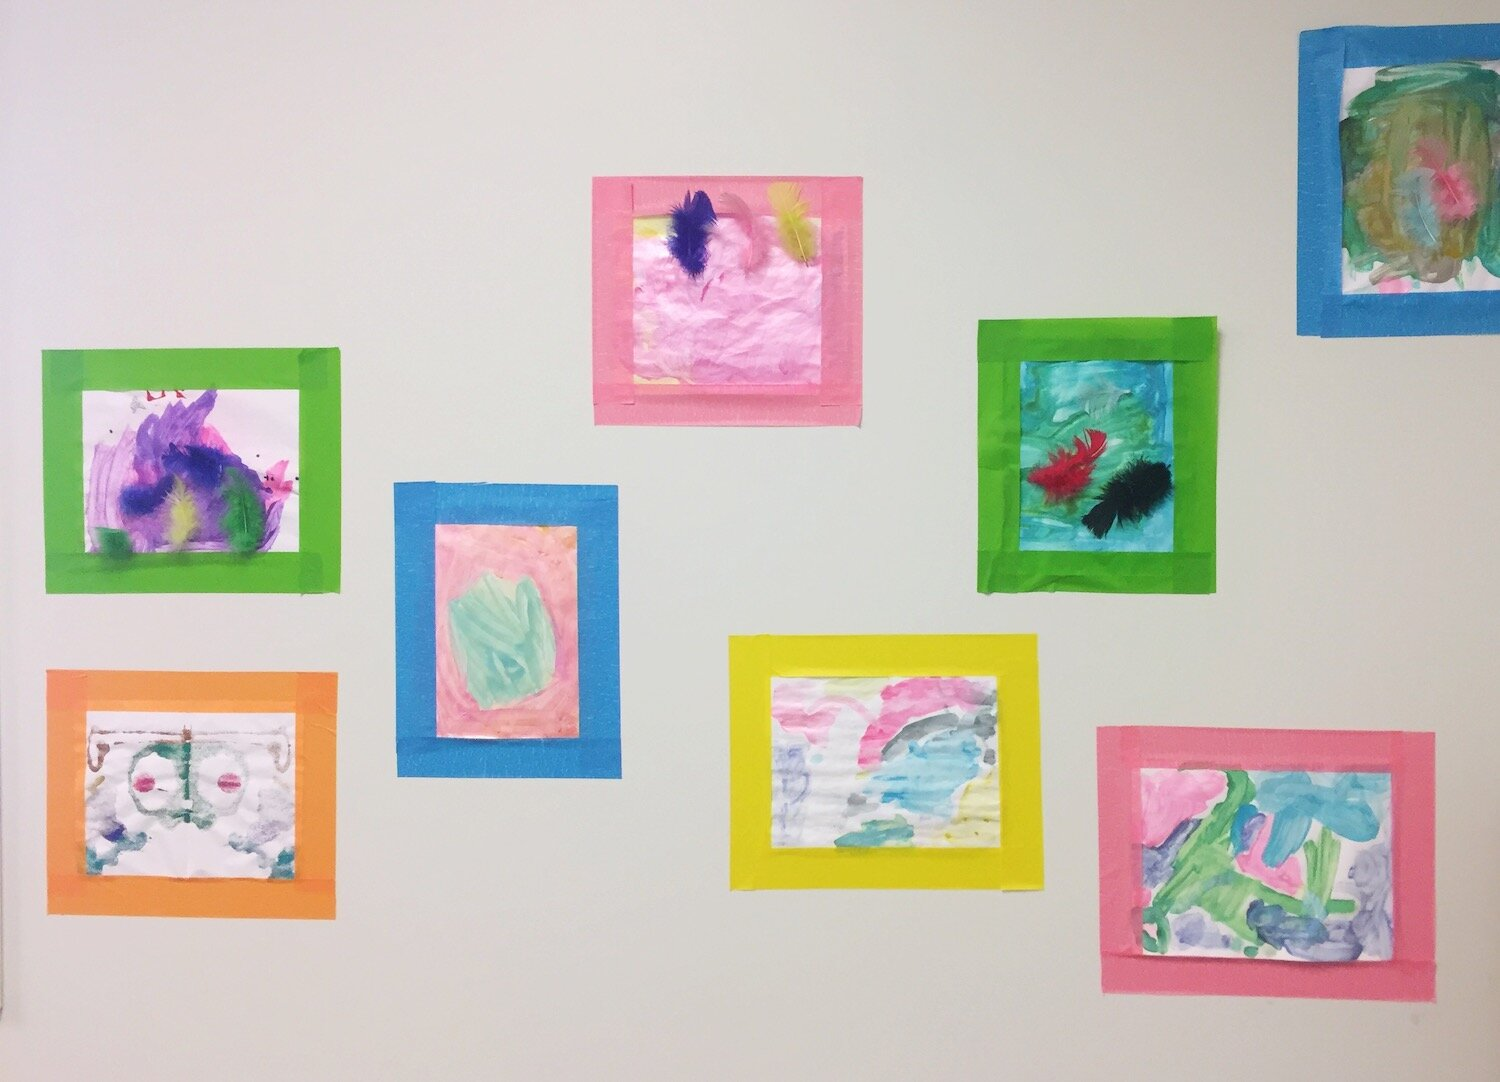 Artwork made by children at the Shaw Center decorates the walls.